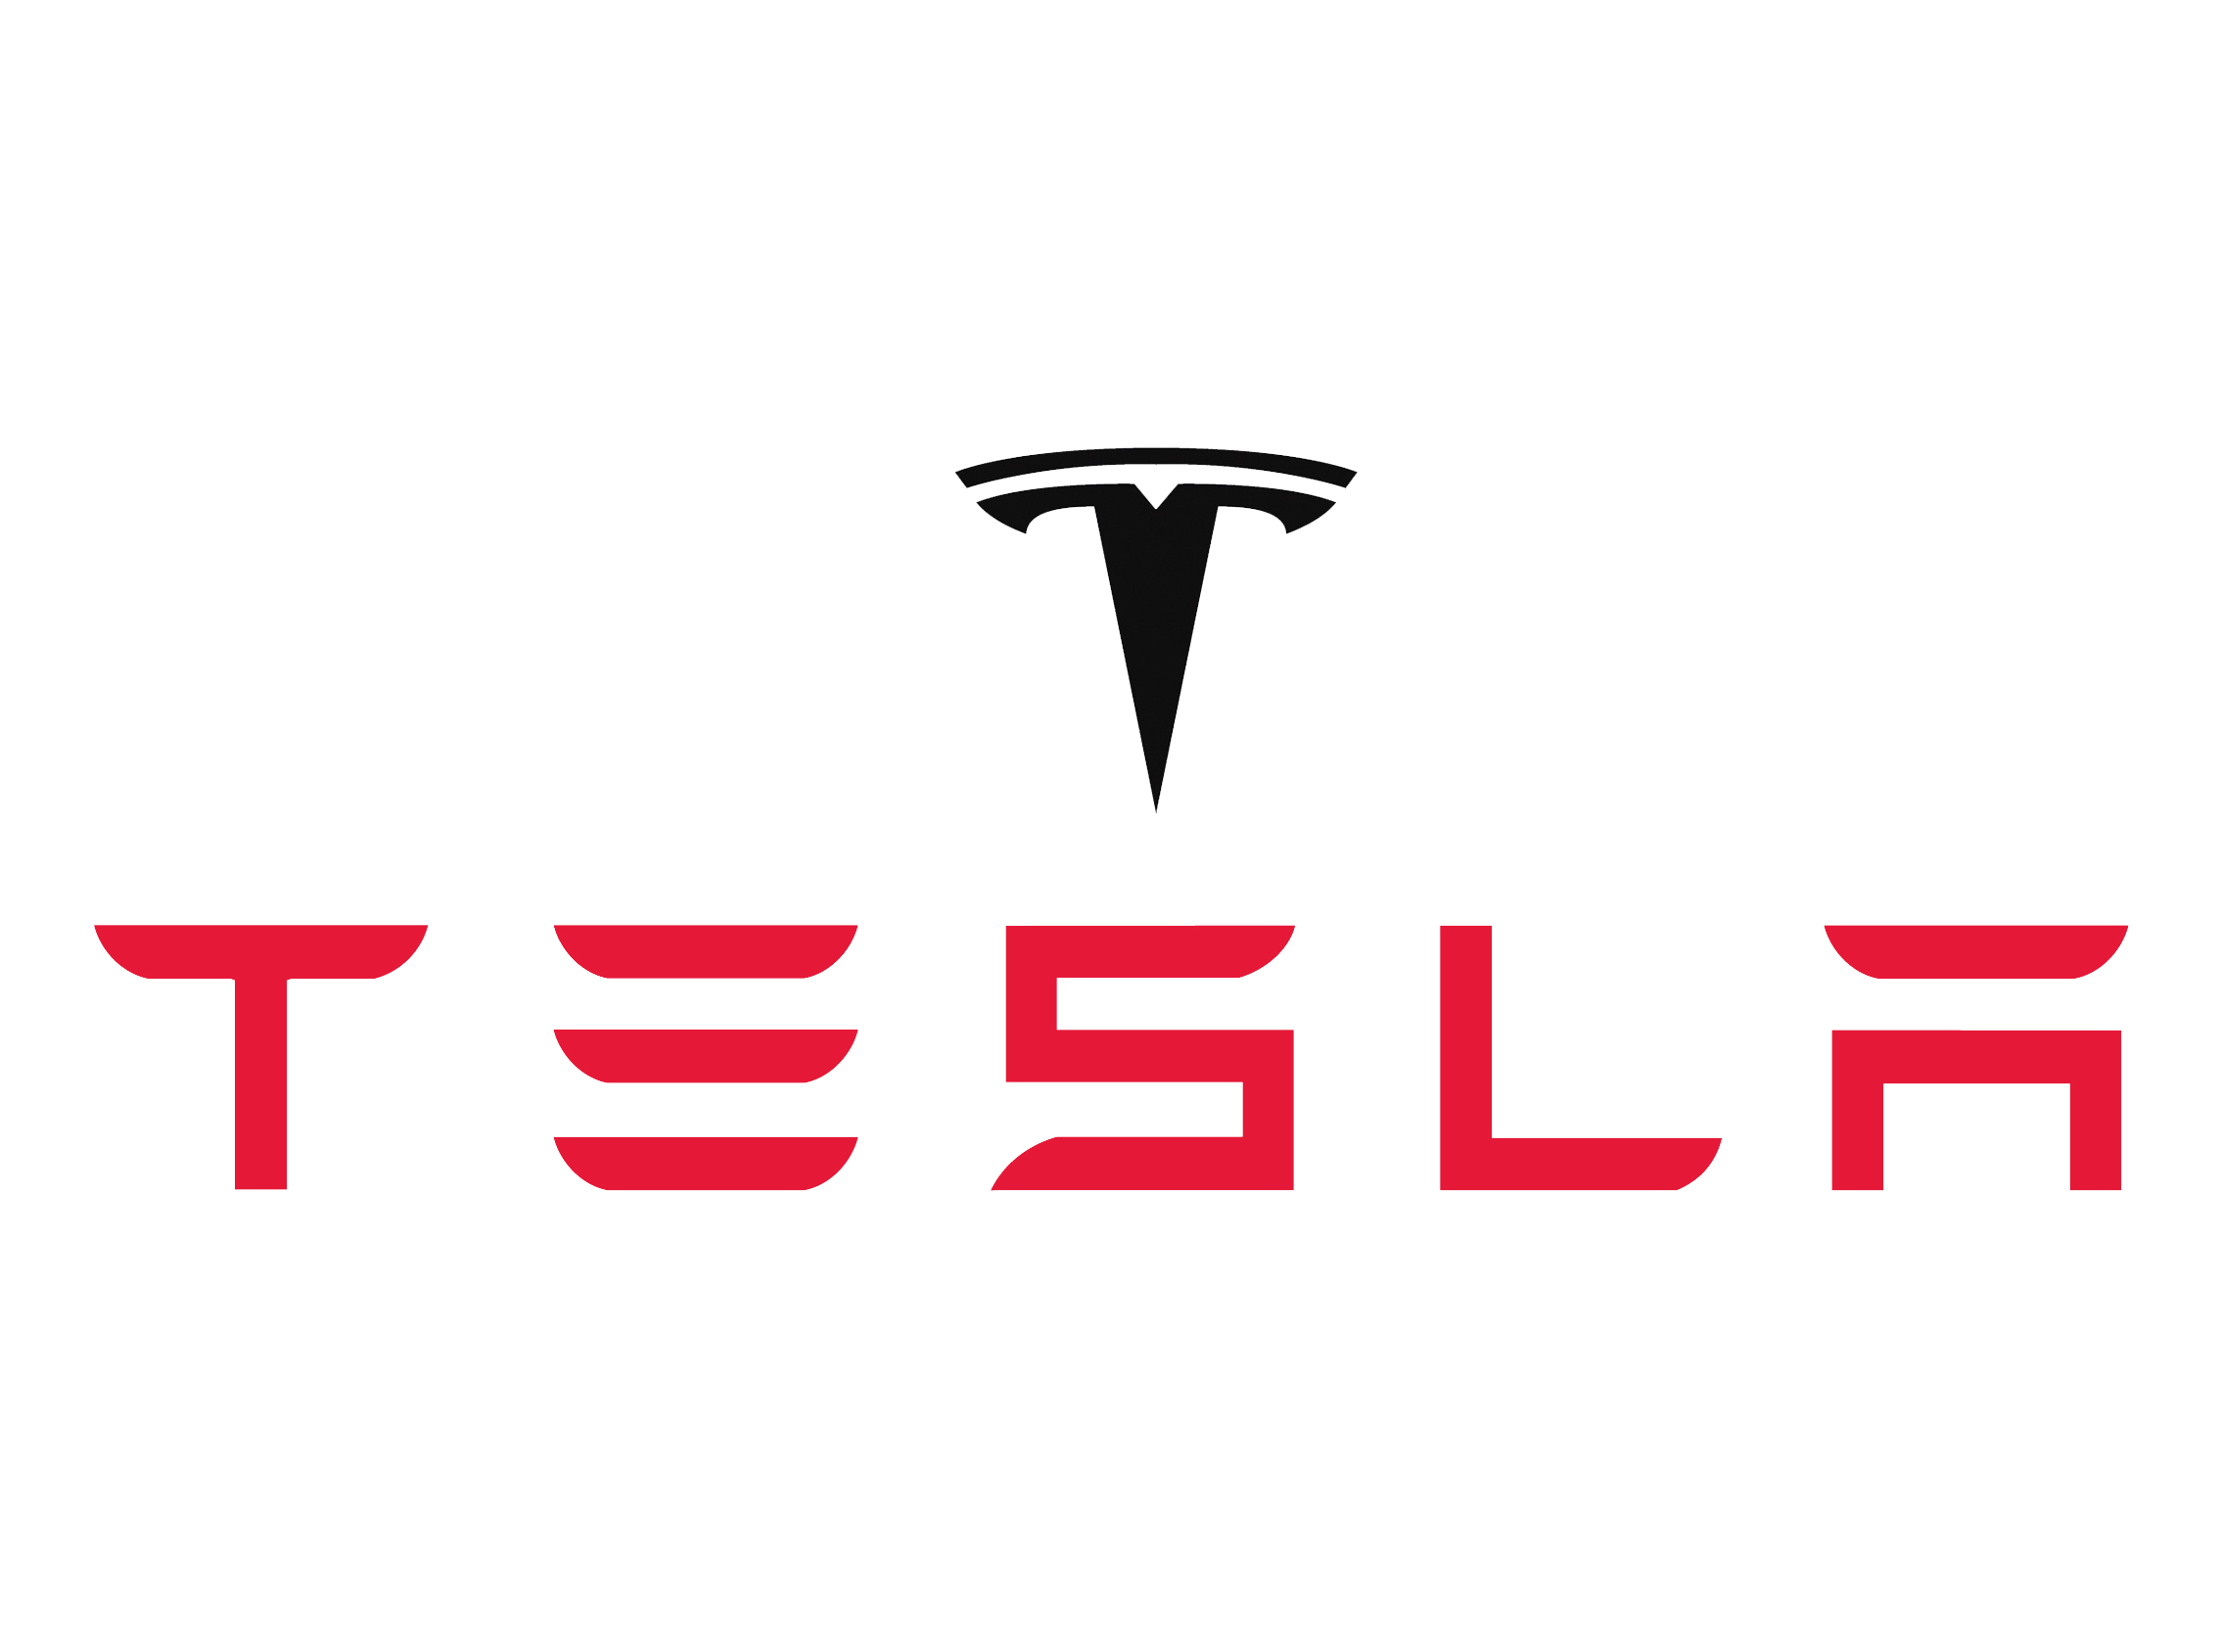 Tesla Inc  Wikipedia